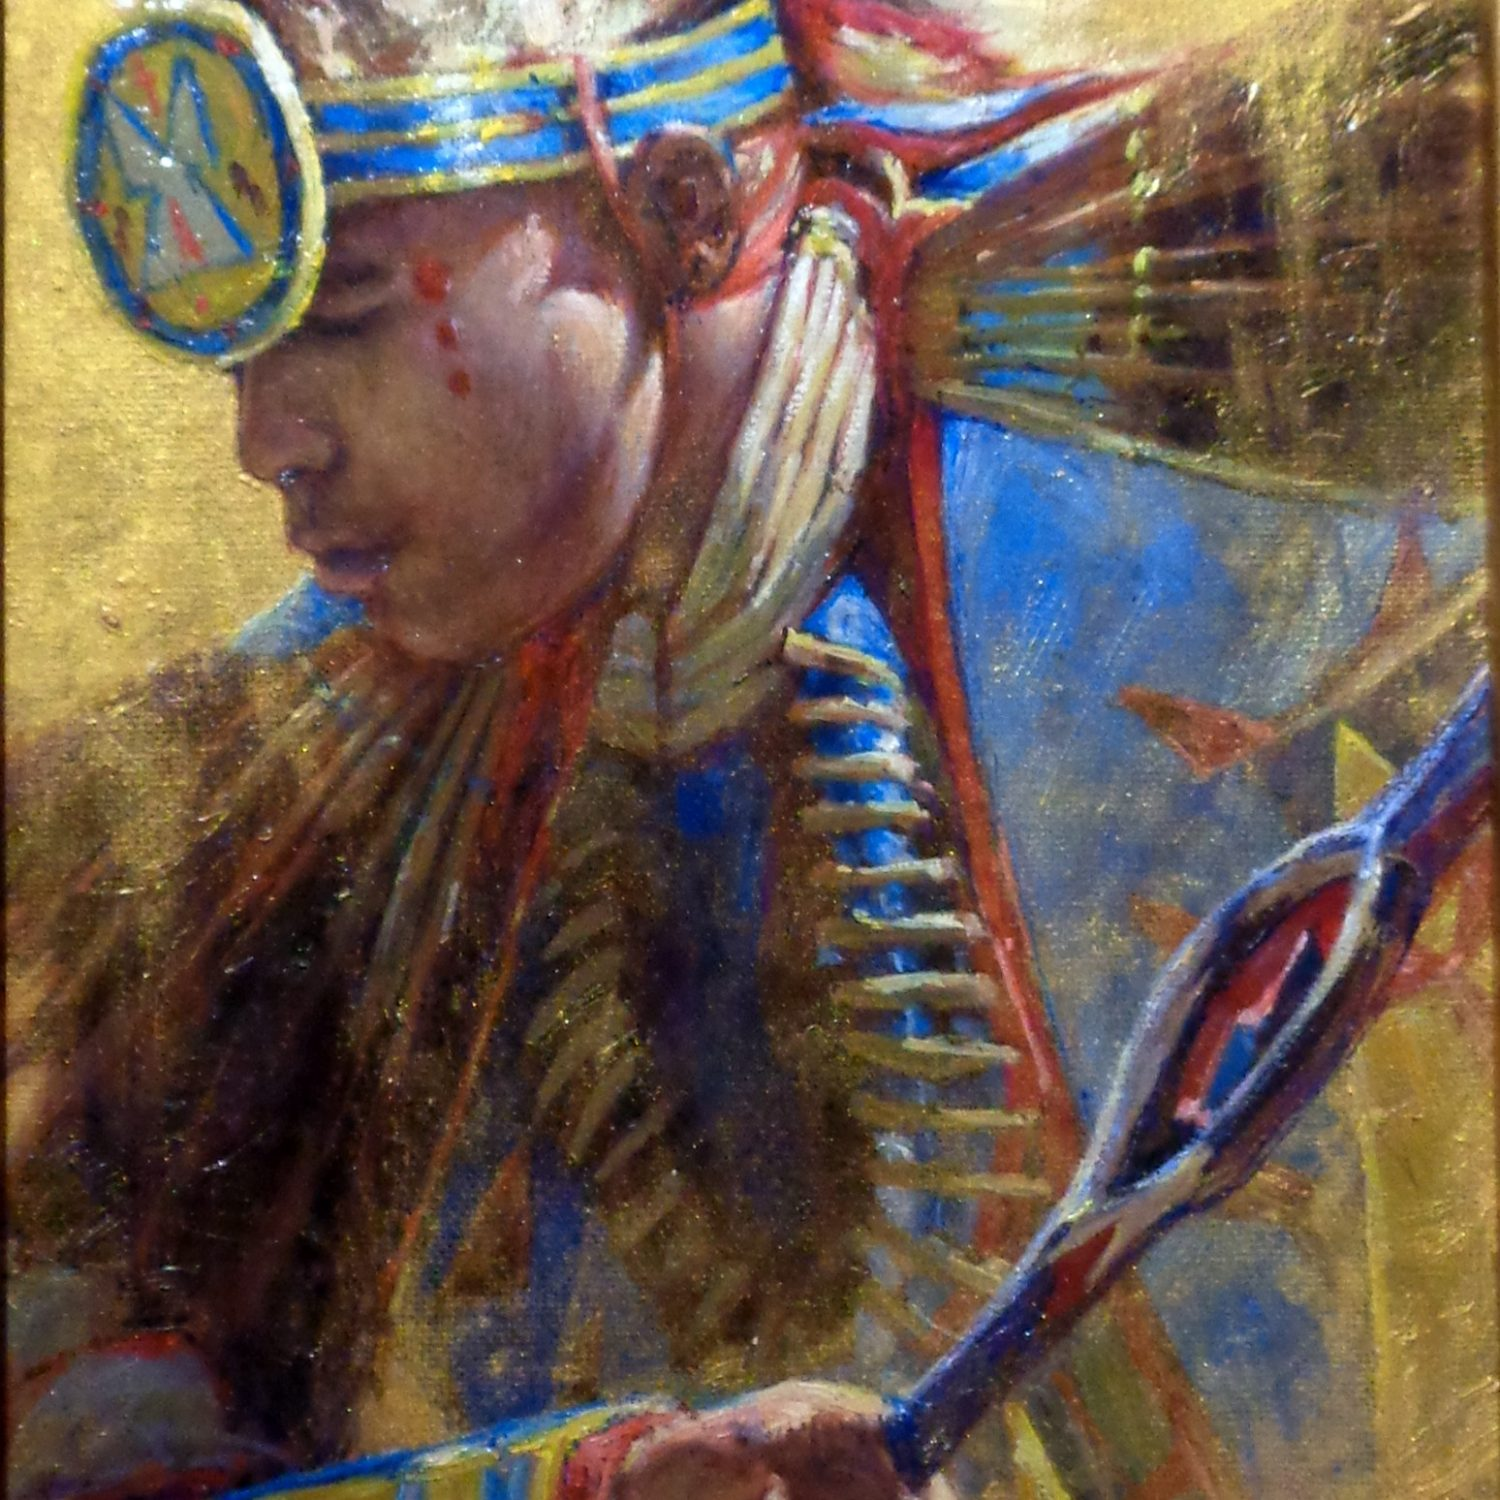 The Warrior- 8x10 - Oil on Canvas - Graeme Hagan